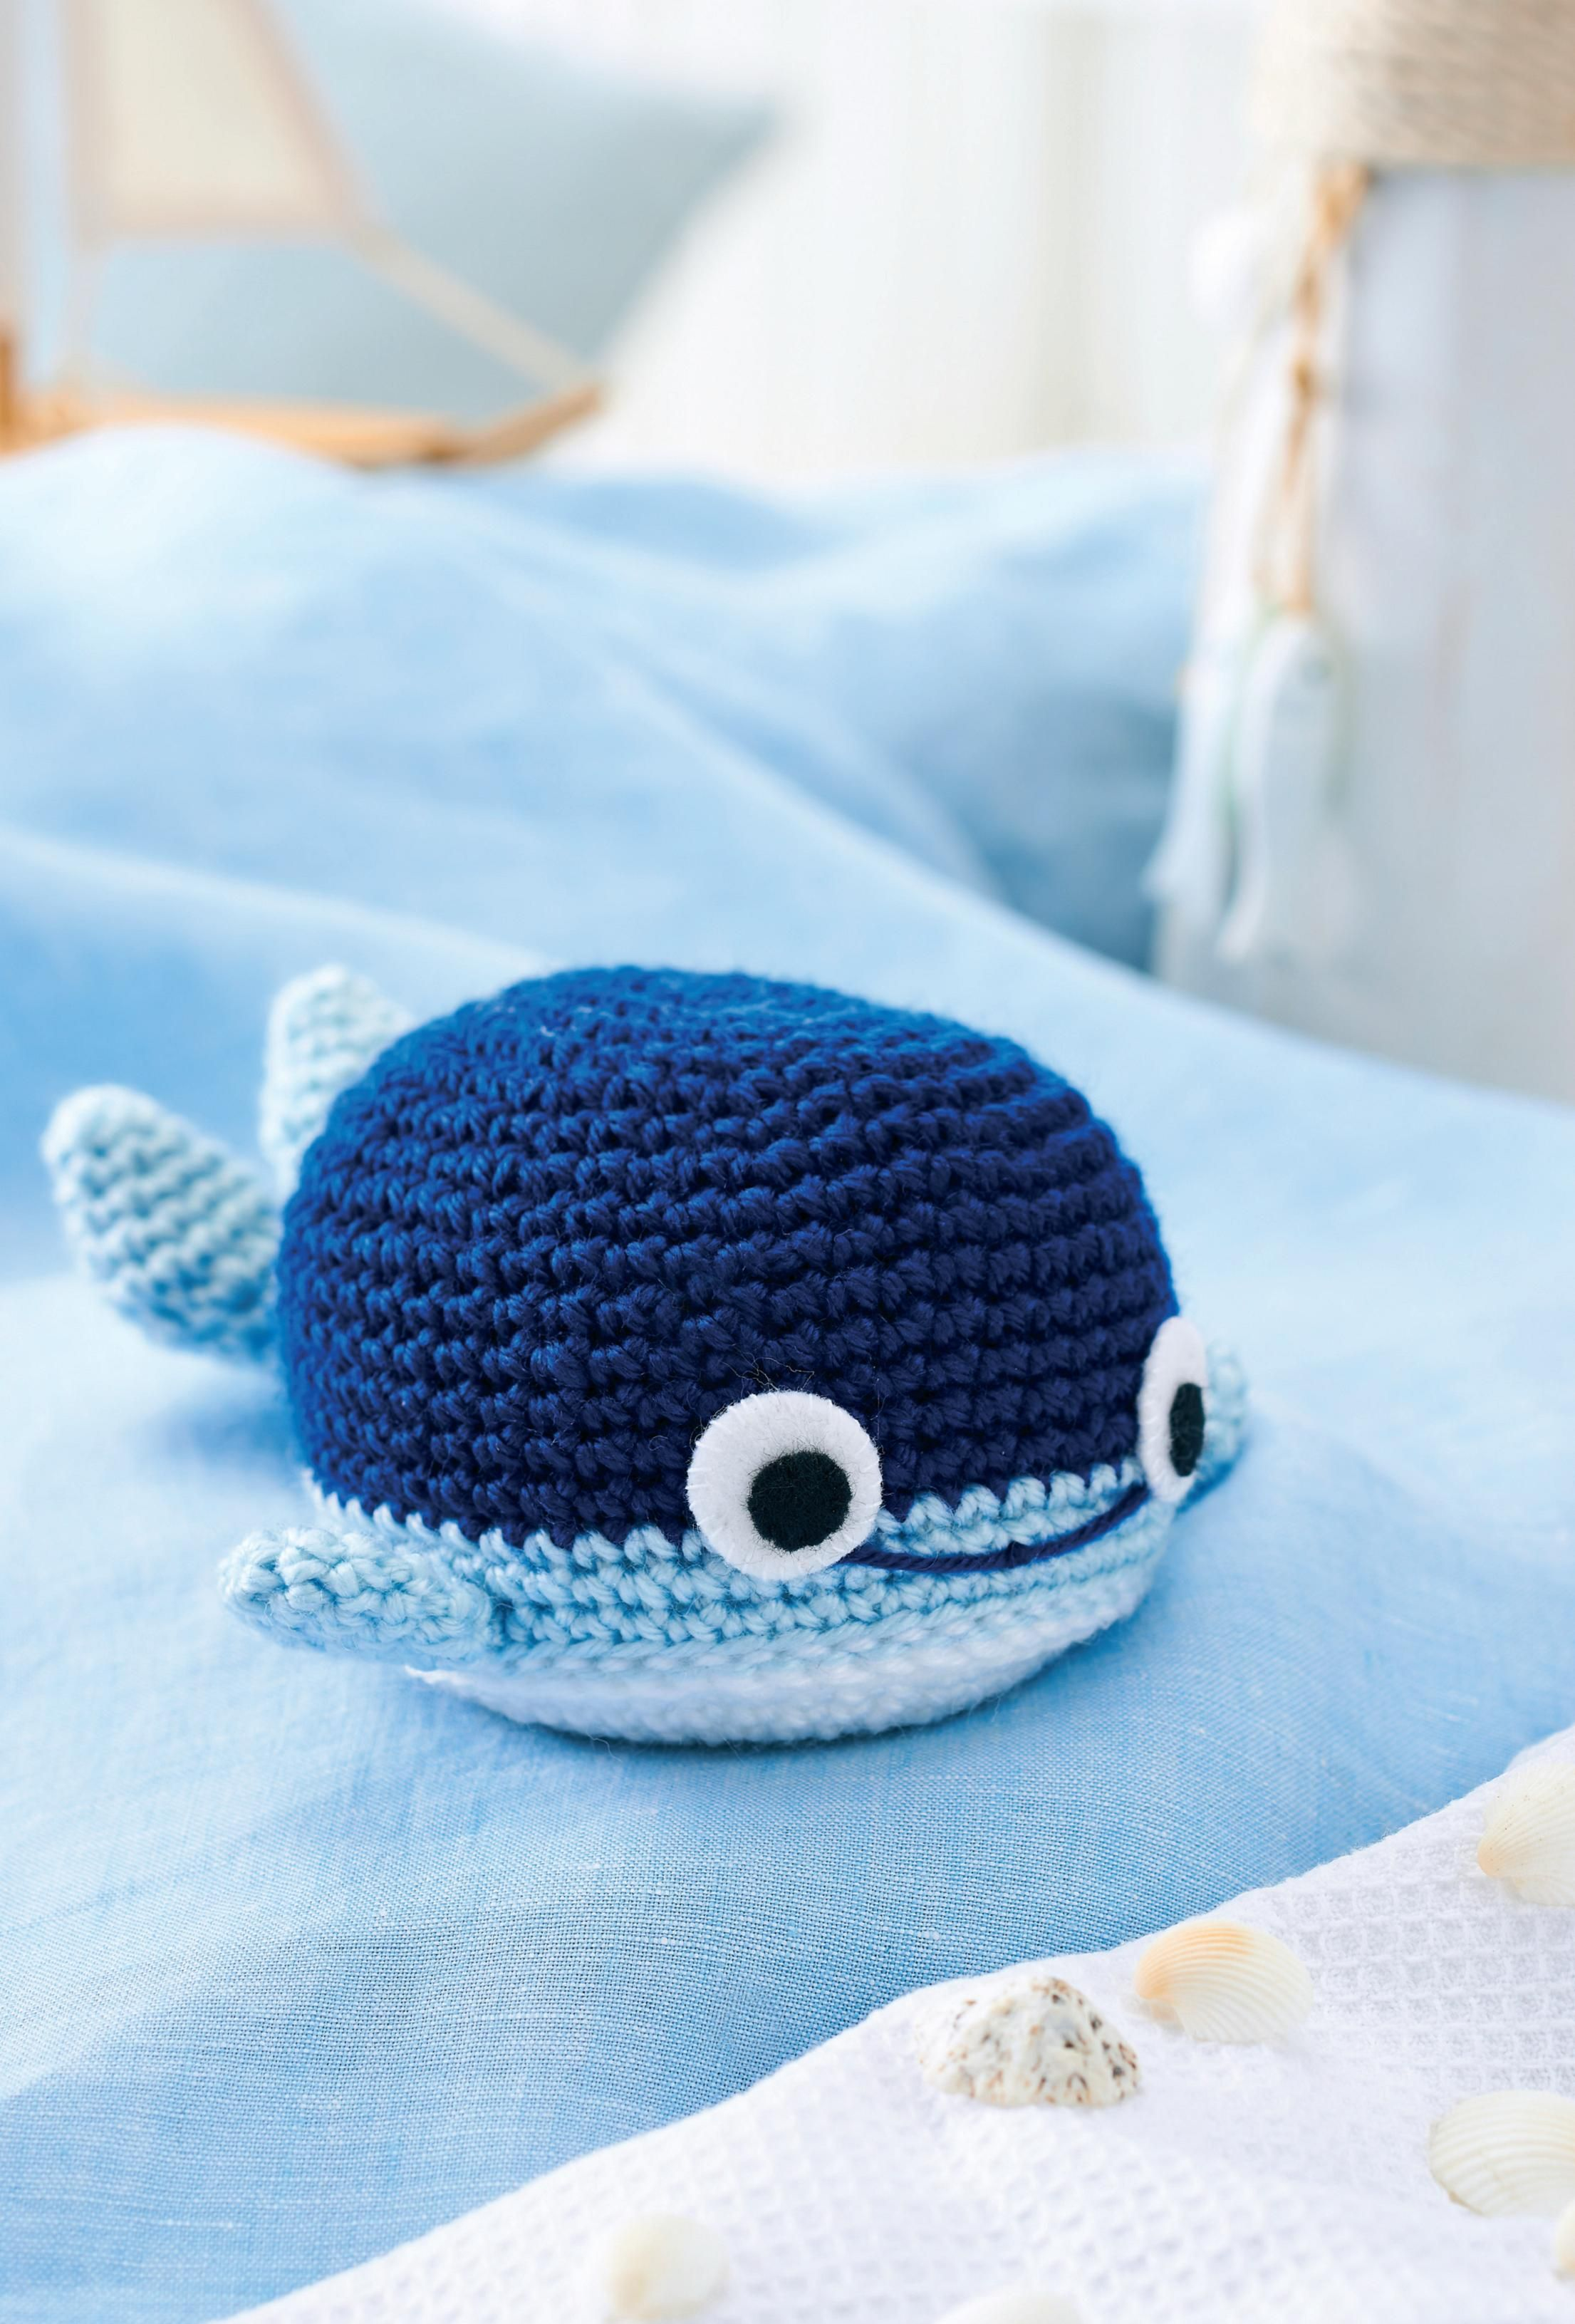 Crochet whale toy | # Crochet ✰ Seaworld *<((((º> Ψ | Pinterest ...